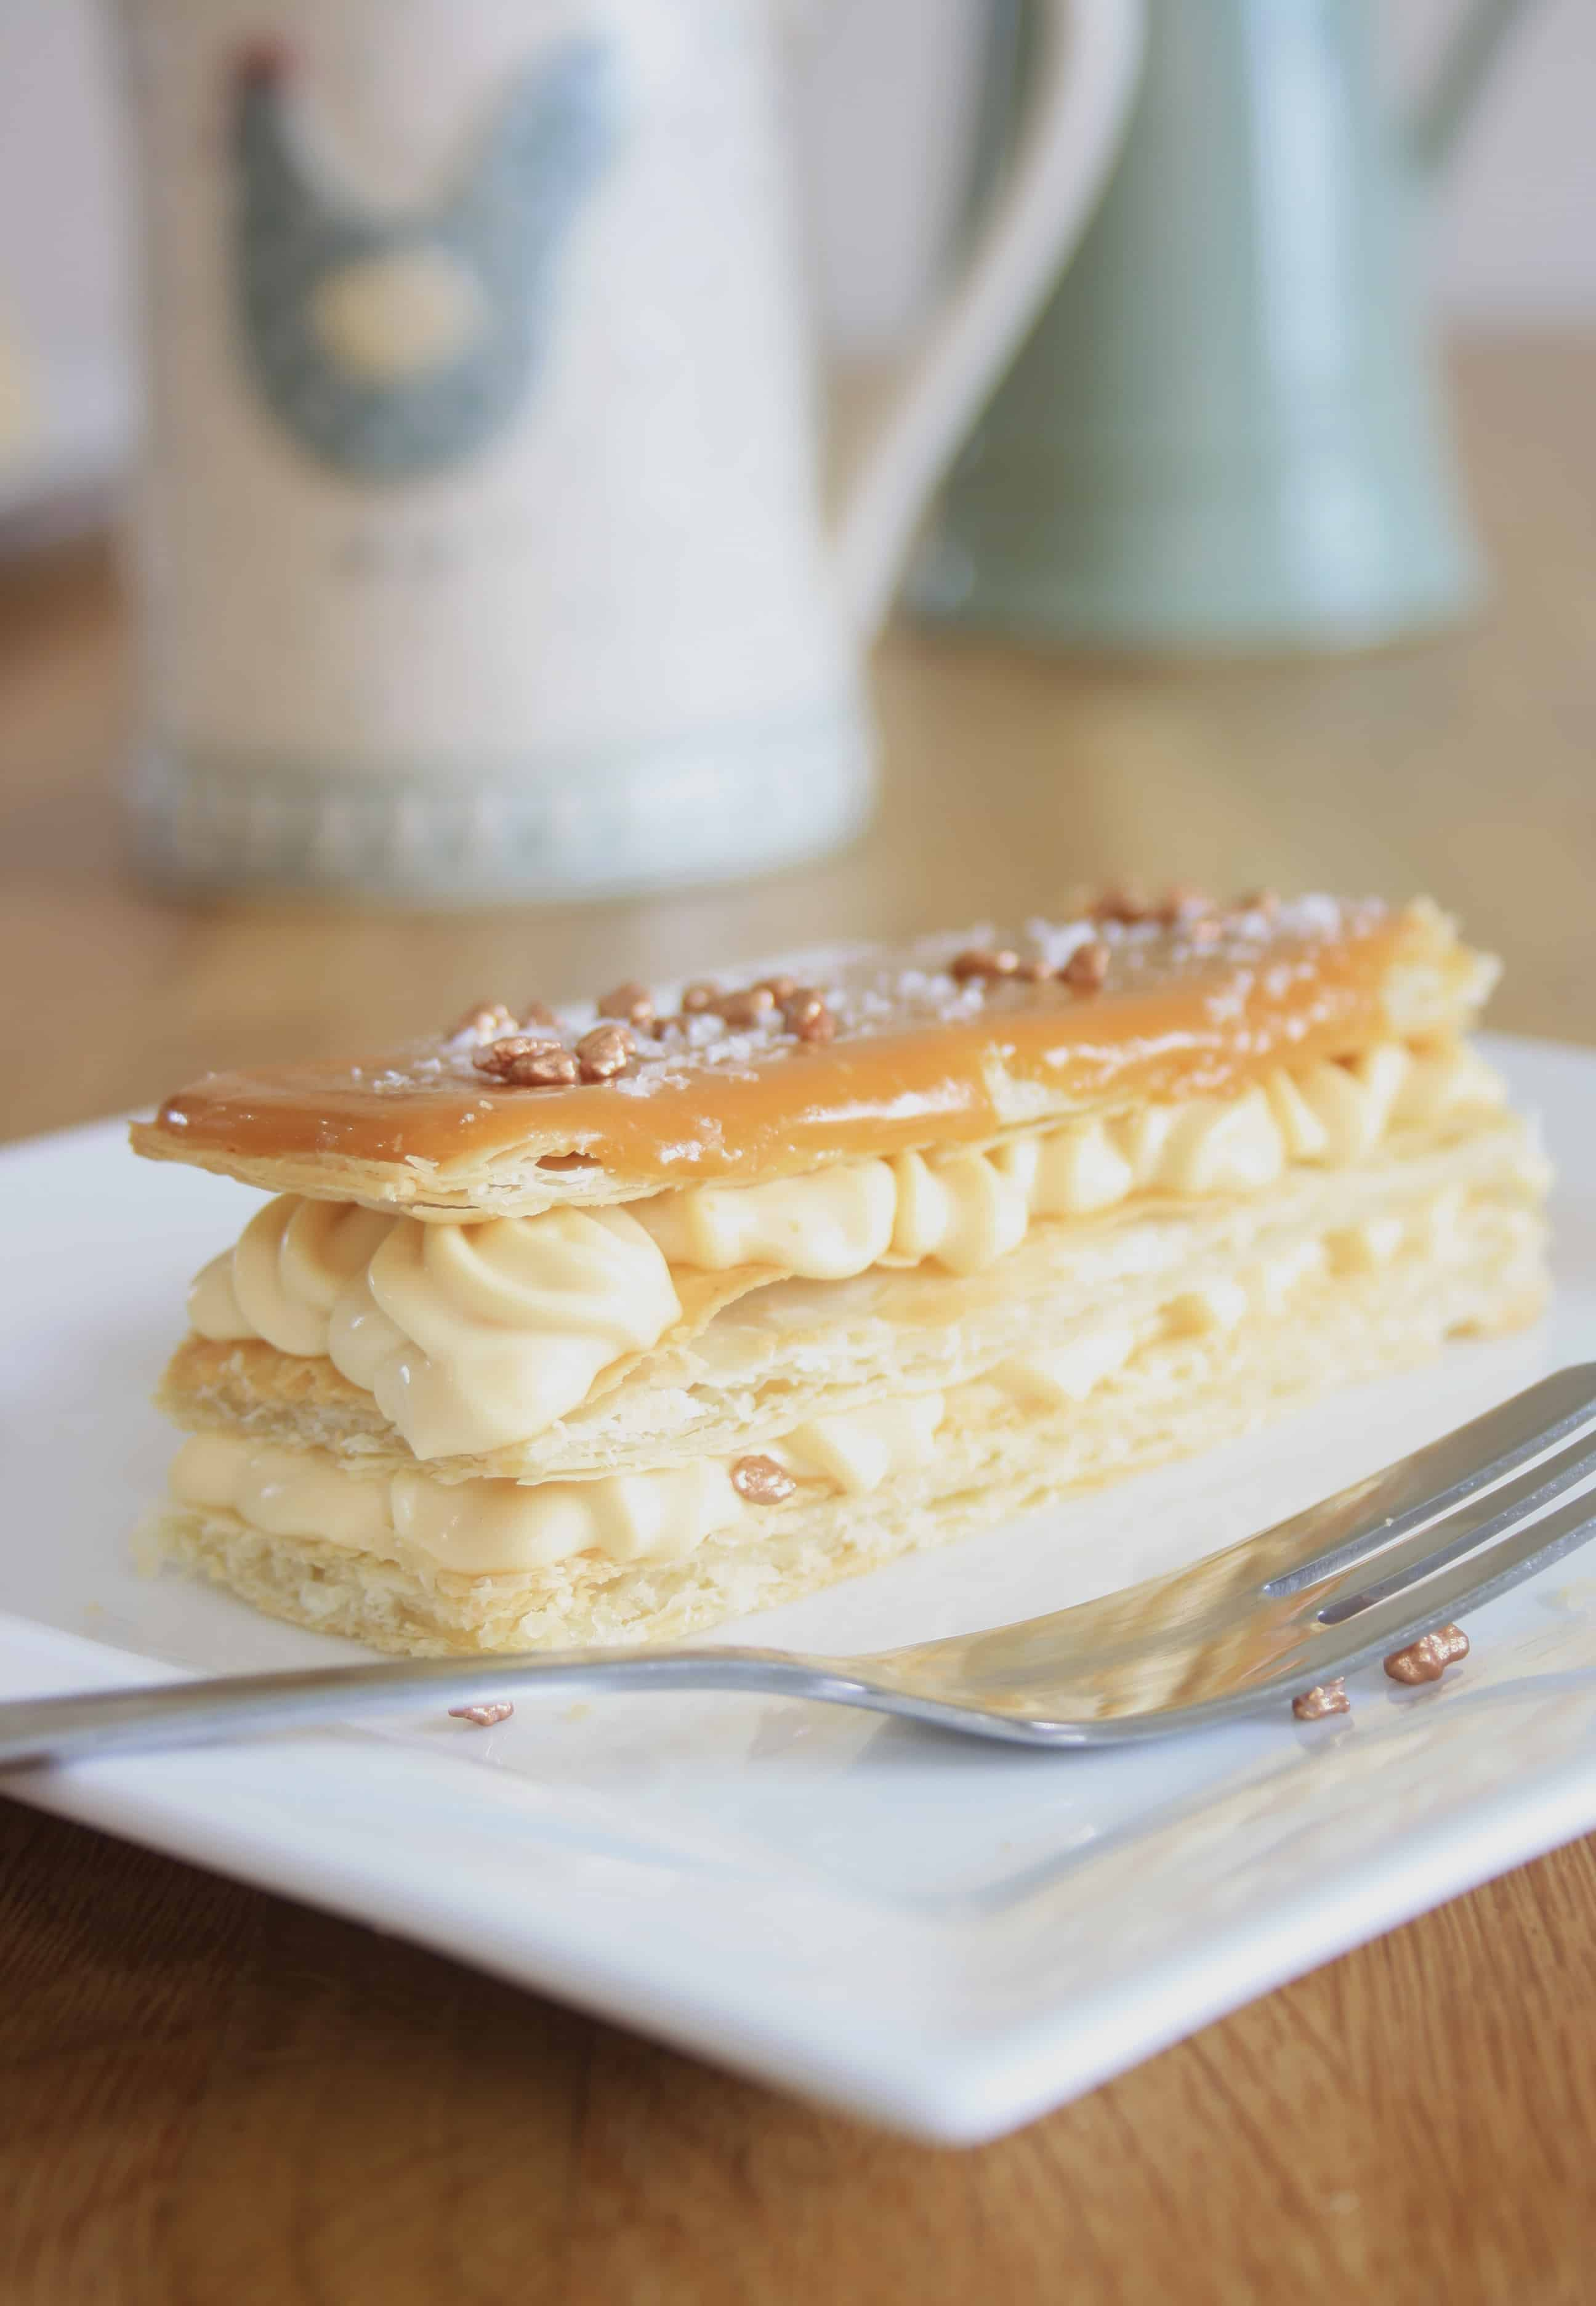 mille feuilles on a plate with a fork